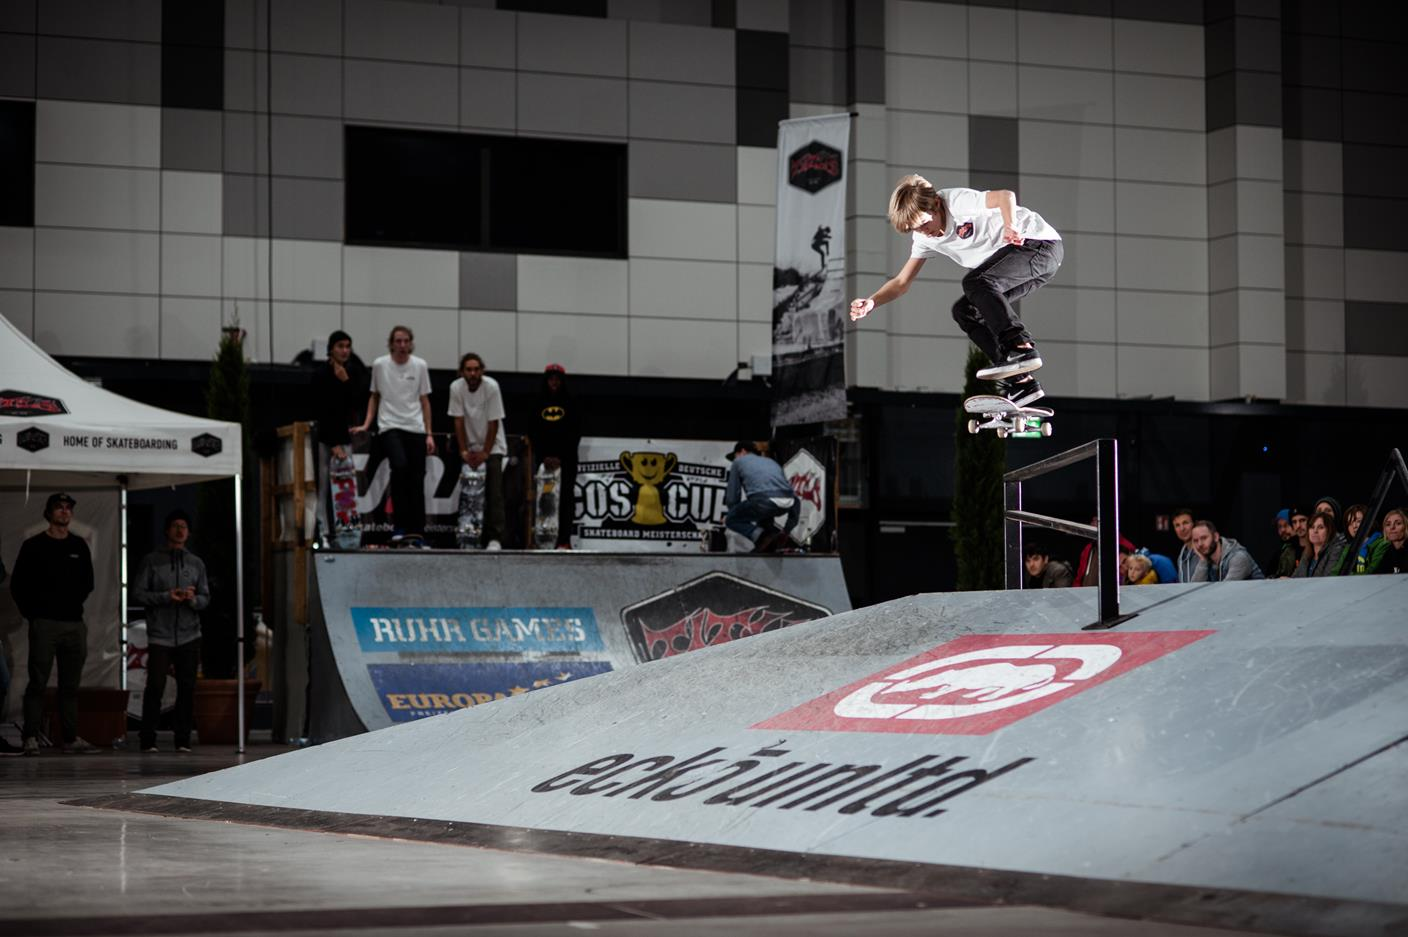 Mika_Möller_Kickflip_BS_Smith